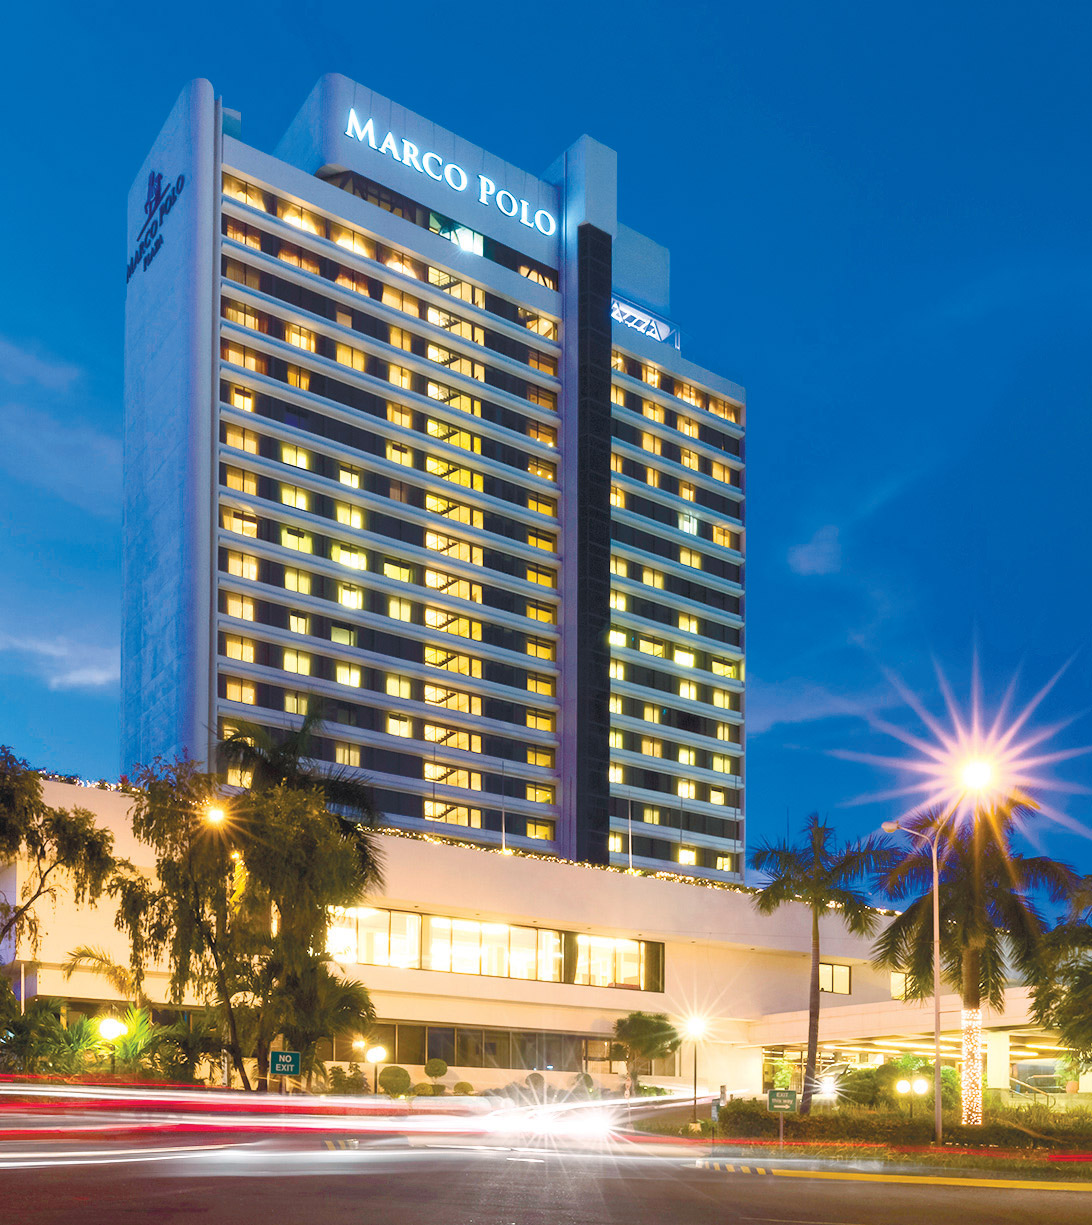 Marco Polo Hotel - Best City Hotel